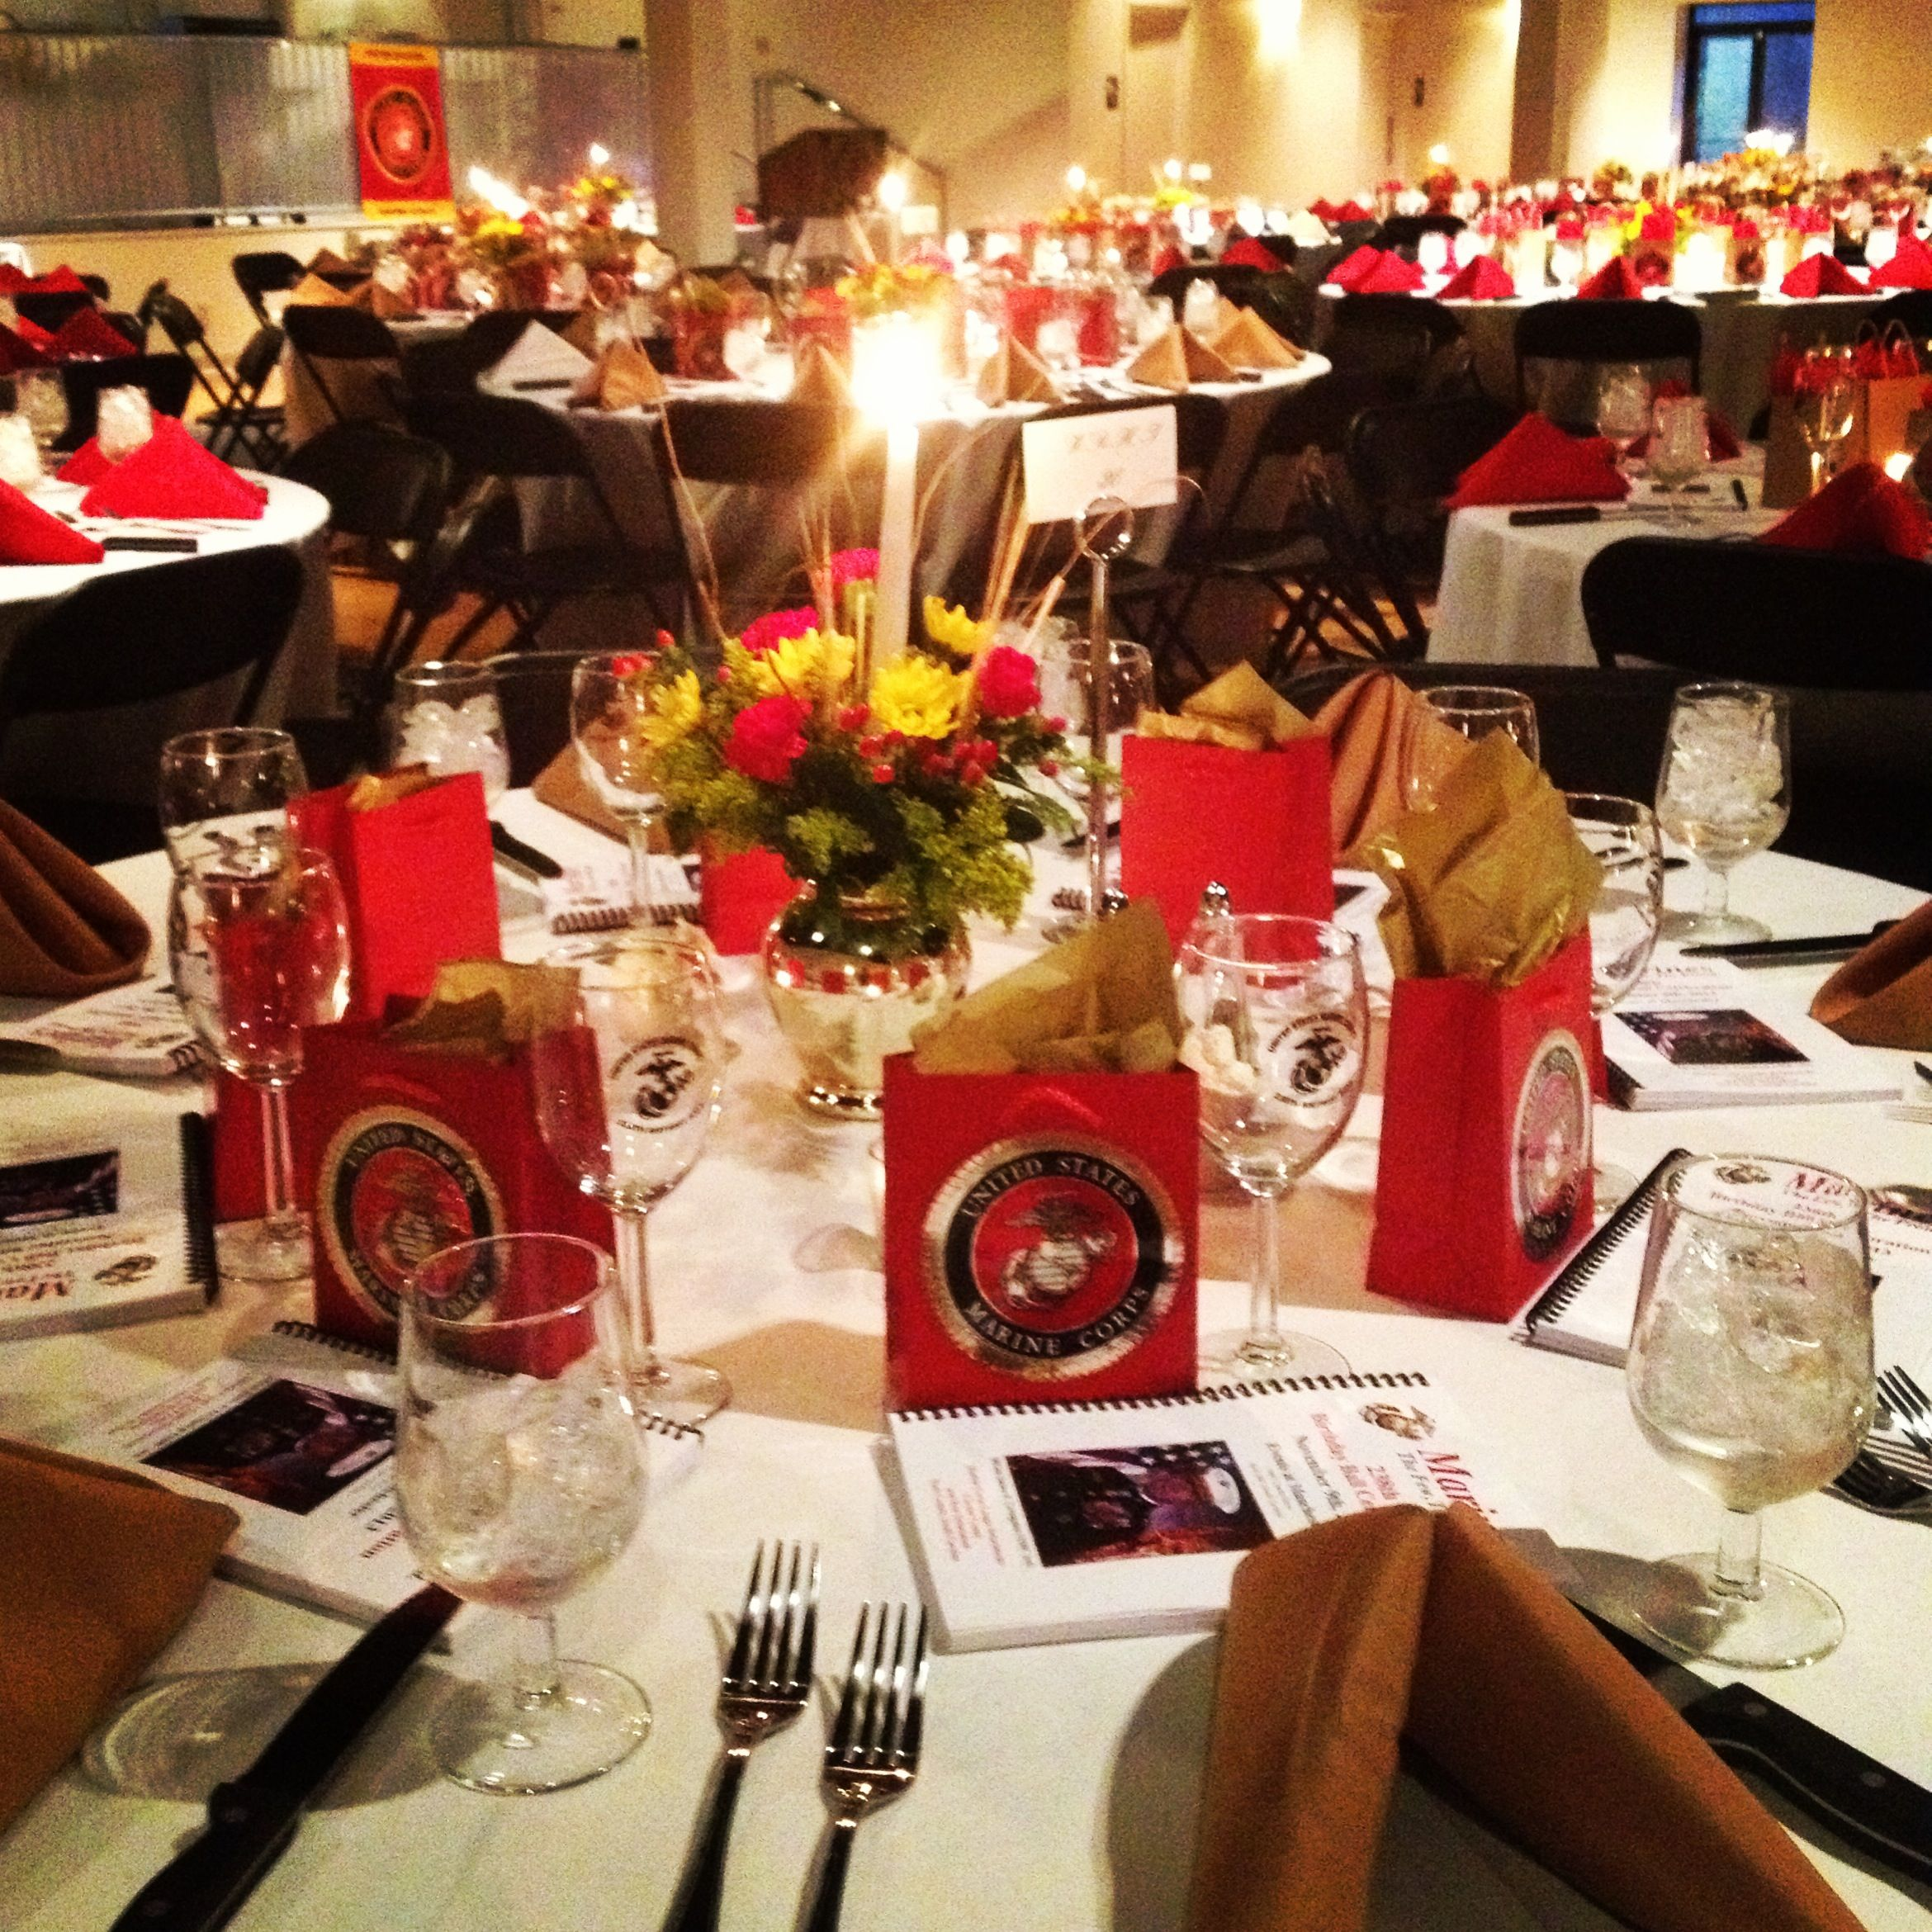 Tablescape from the Marine Corps Ball Events at